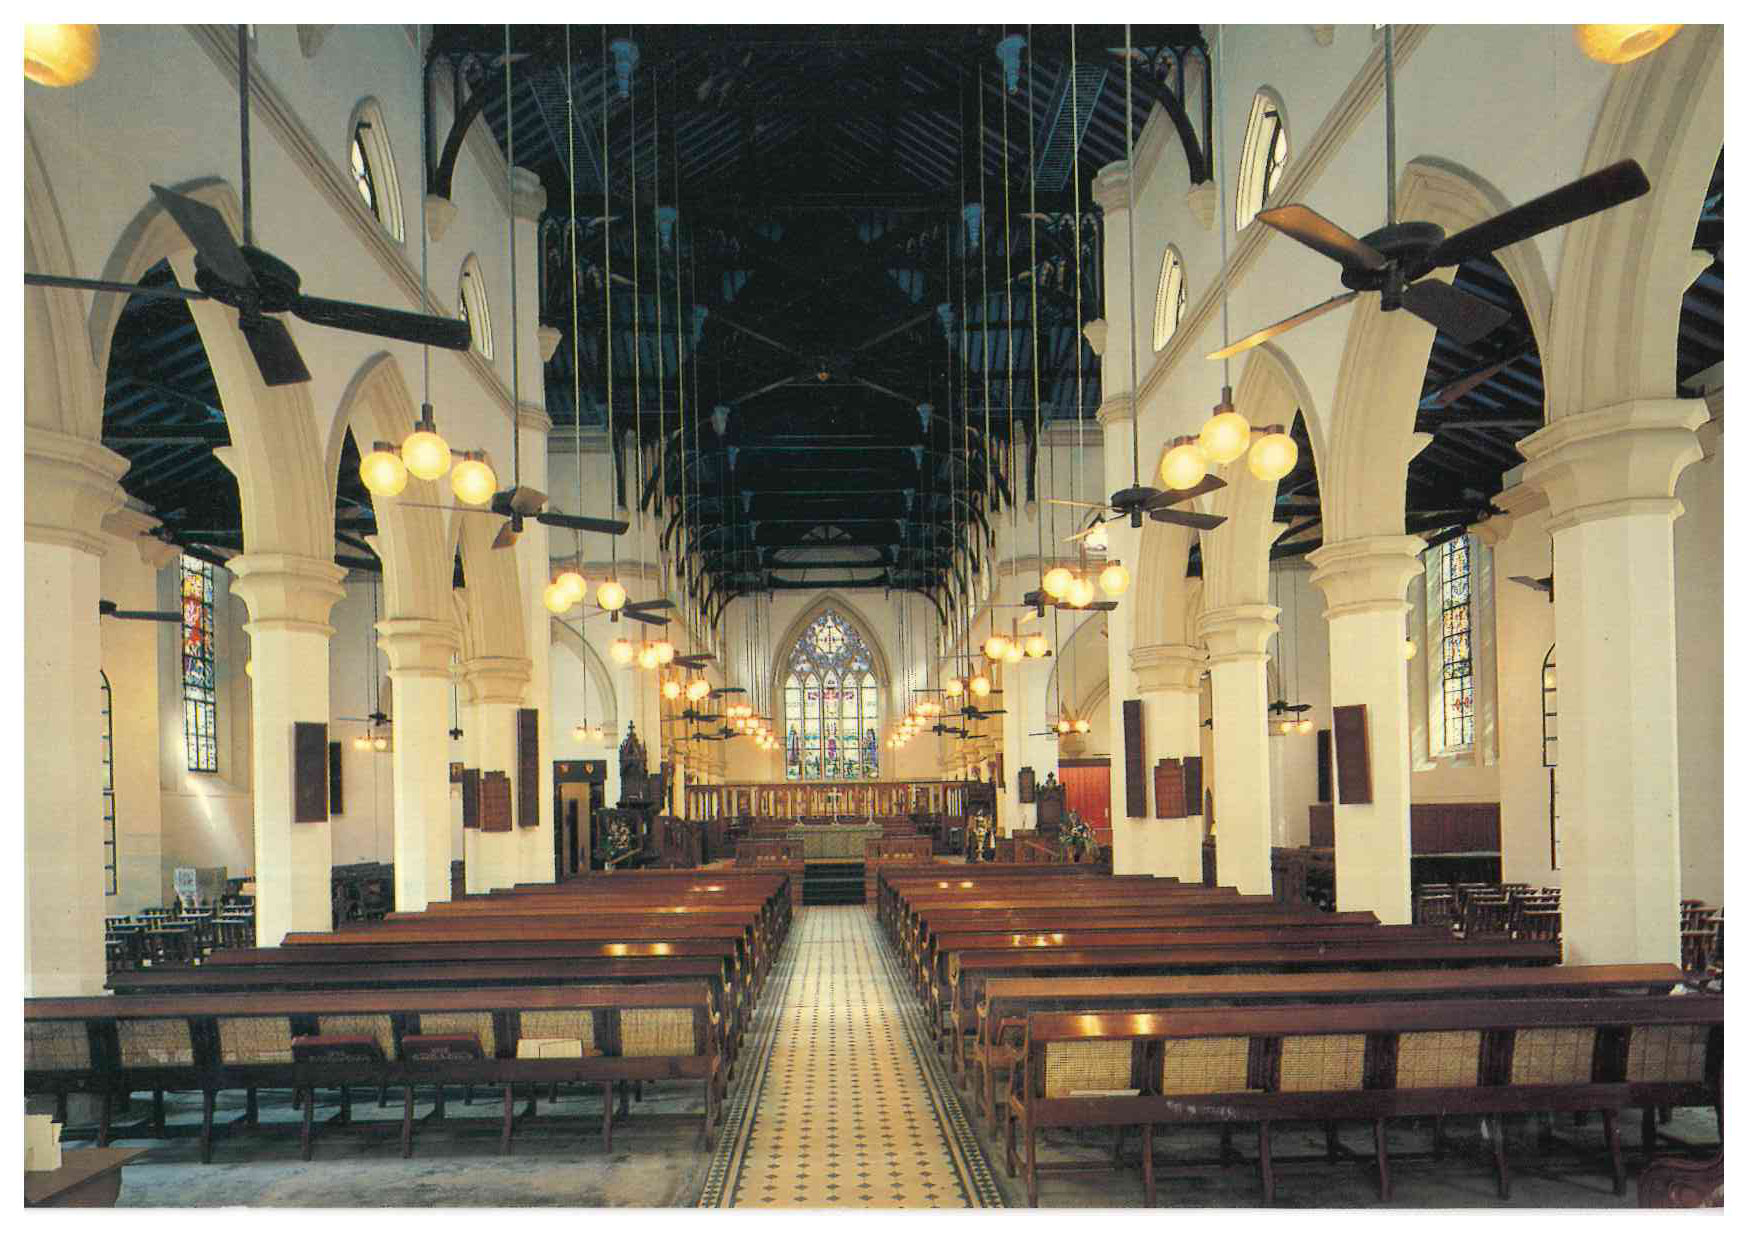 00361-St John's Cathedral,with HK Cathedral Choir, Hong Kong 2000.jpg